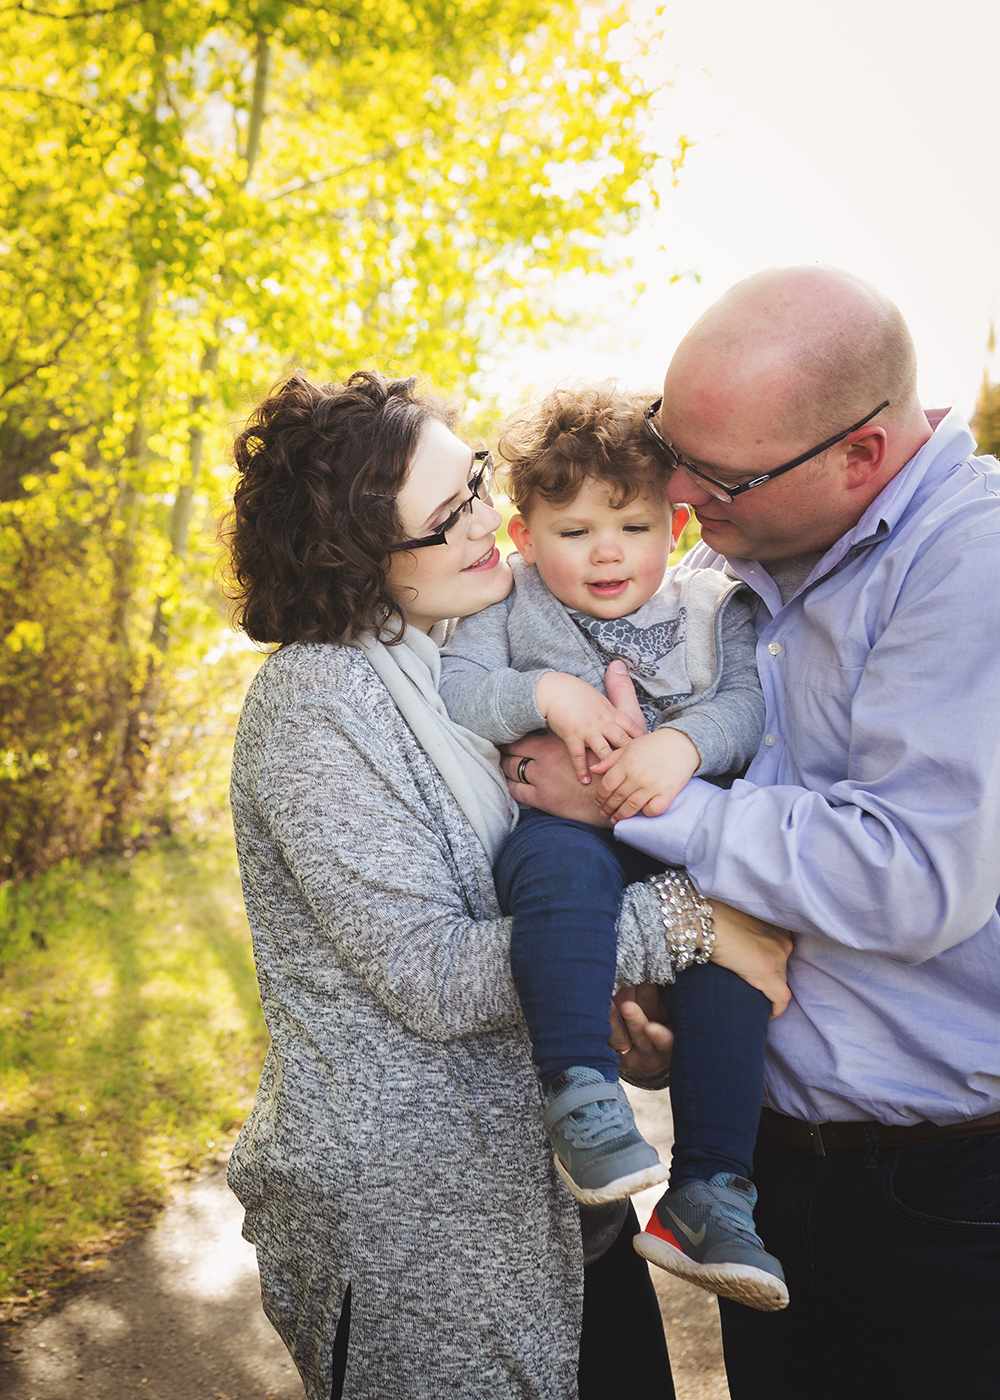 Edmonton Family Photographer_Stokes Family 8.jpg